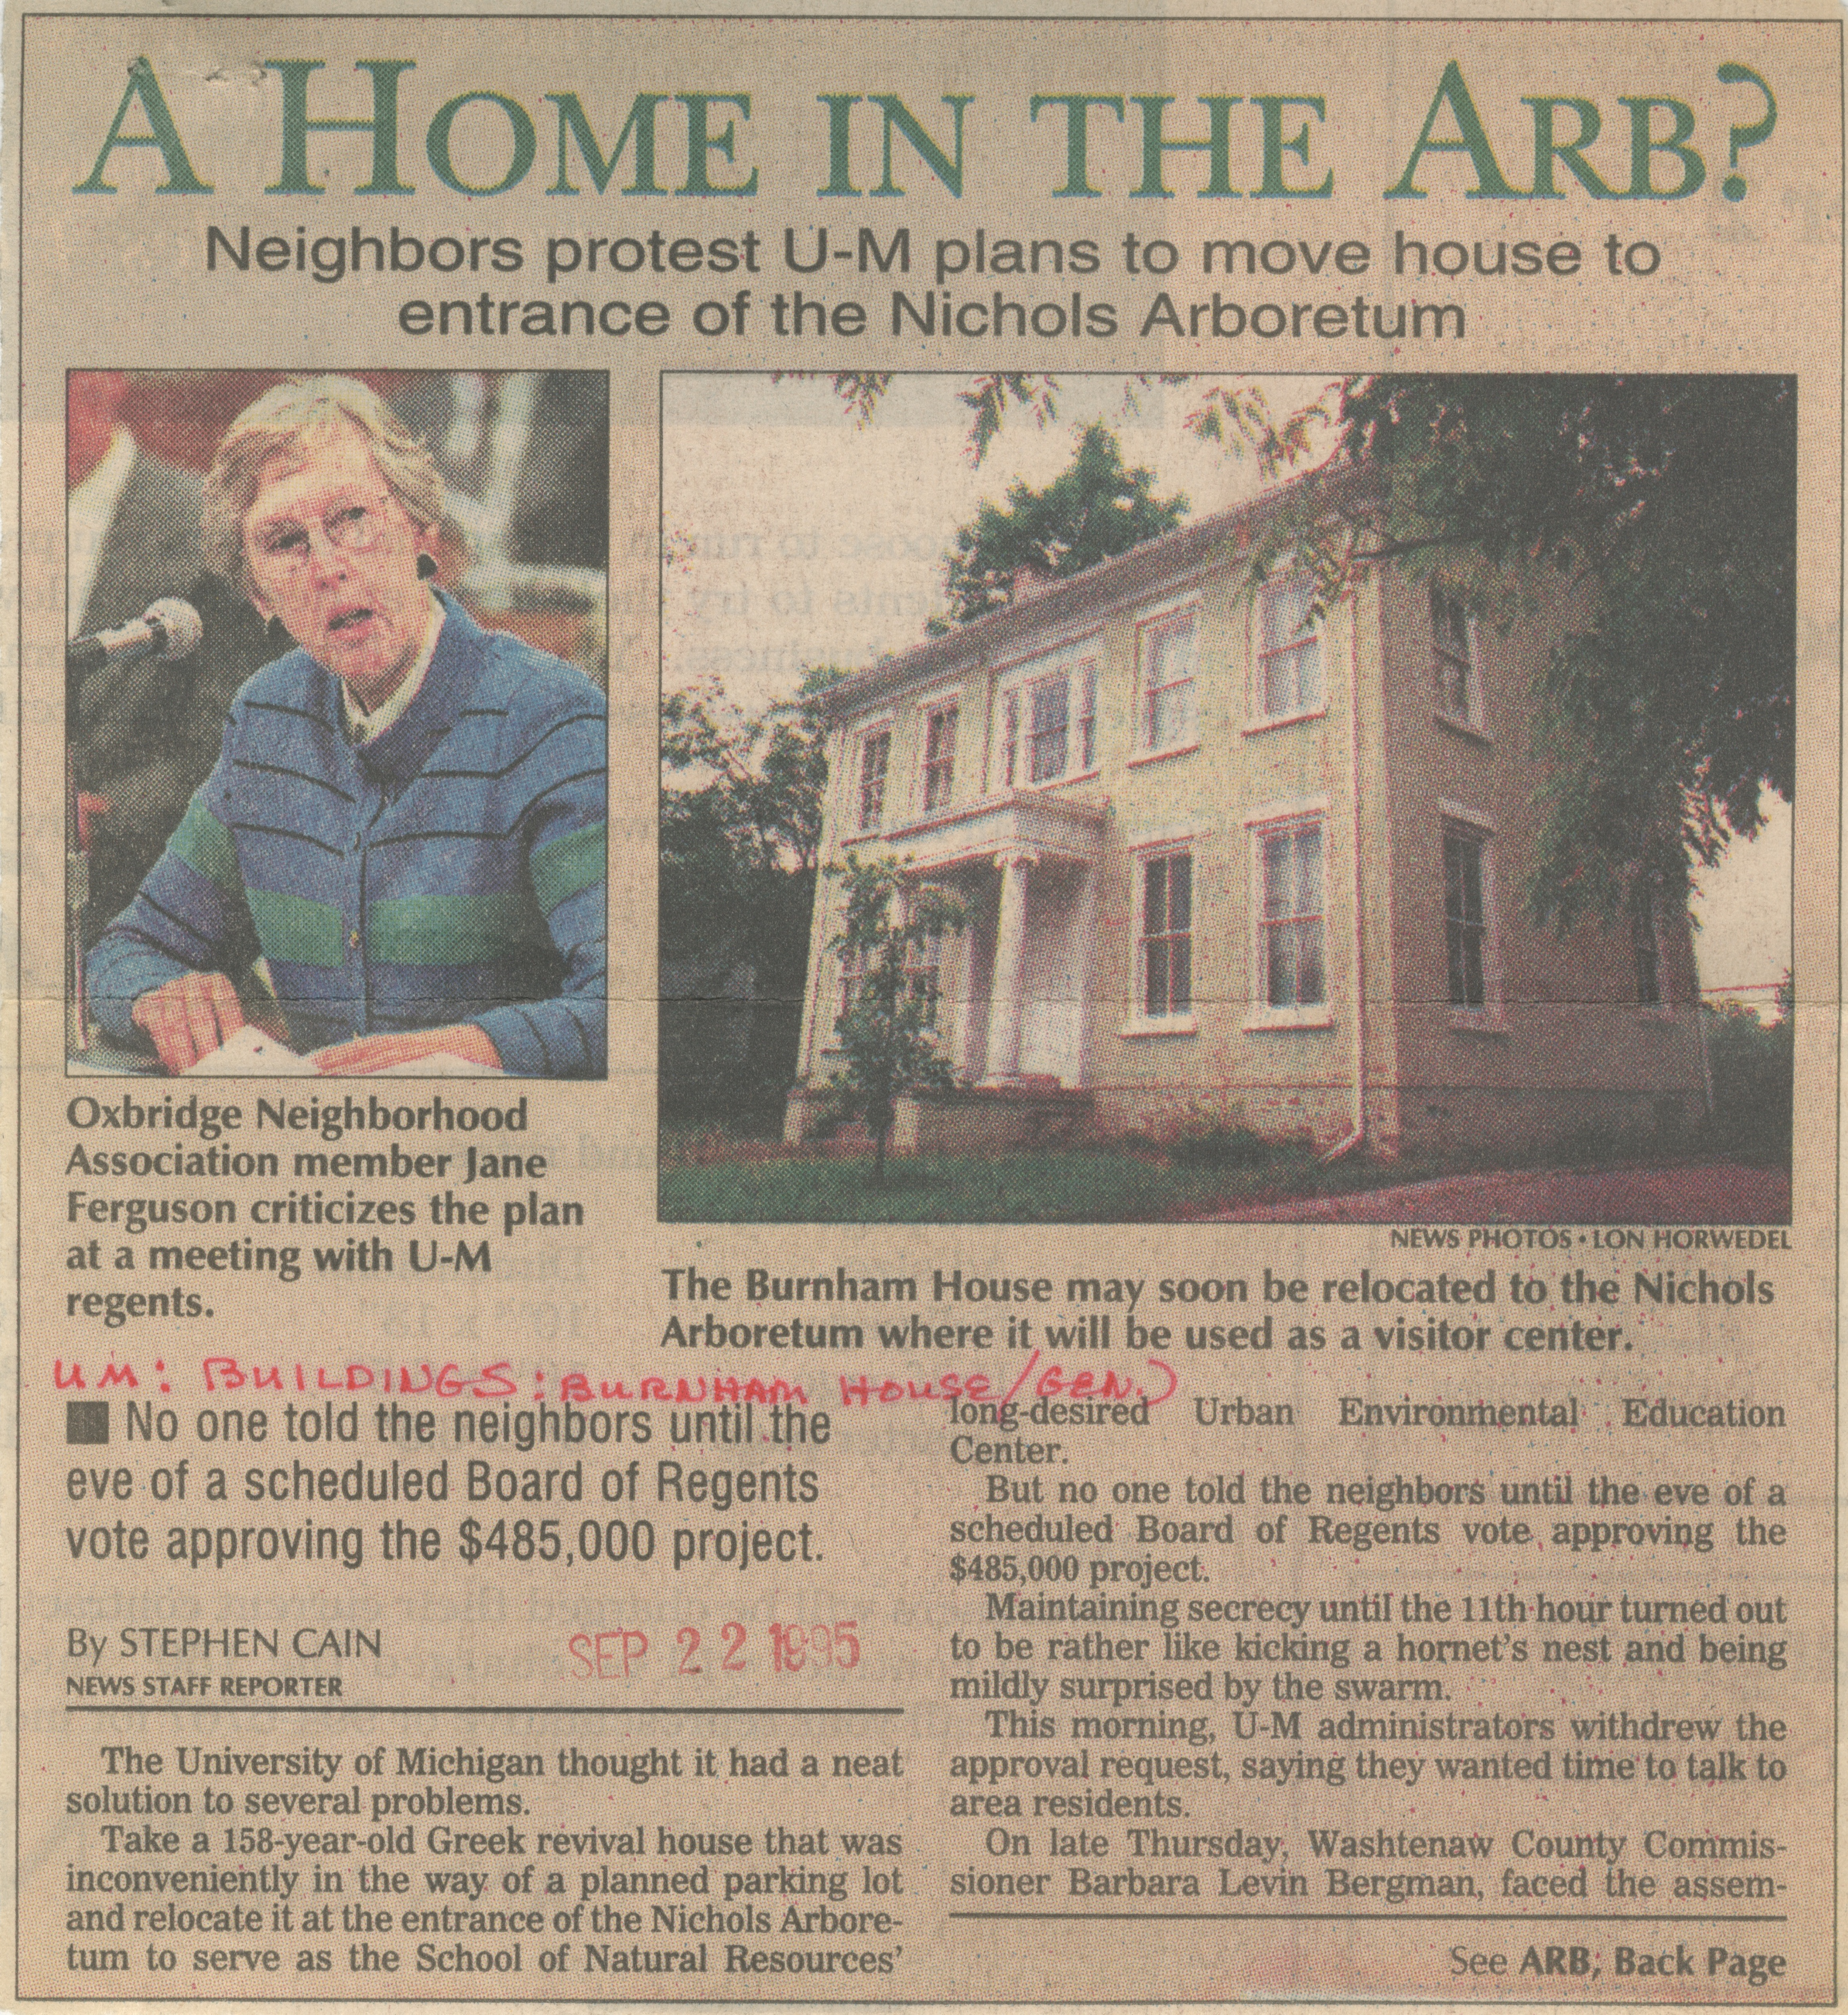 A Home In The Arb? image